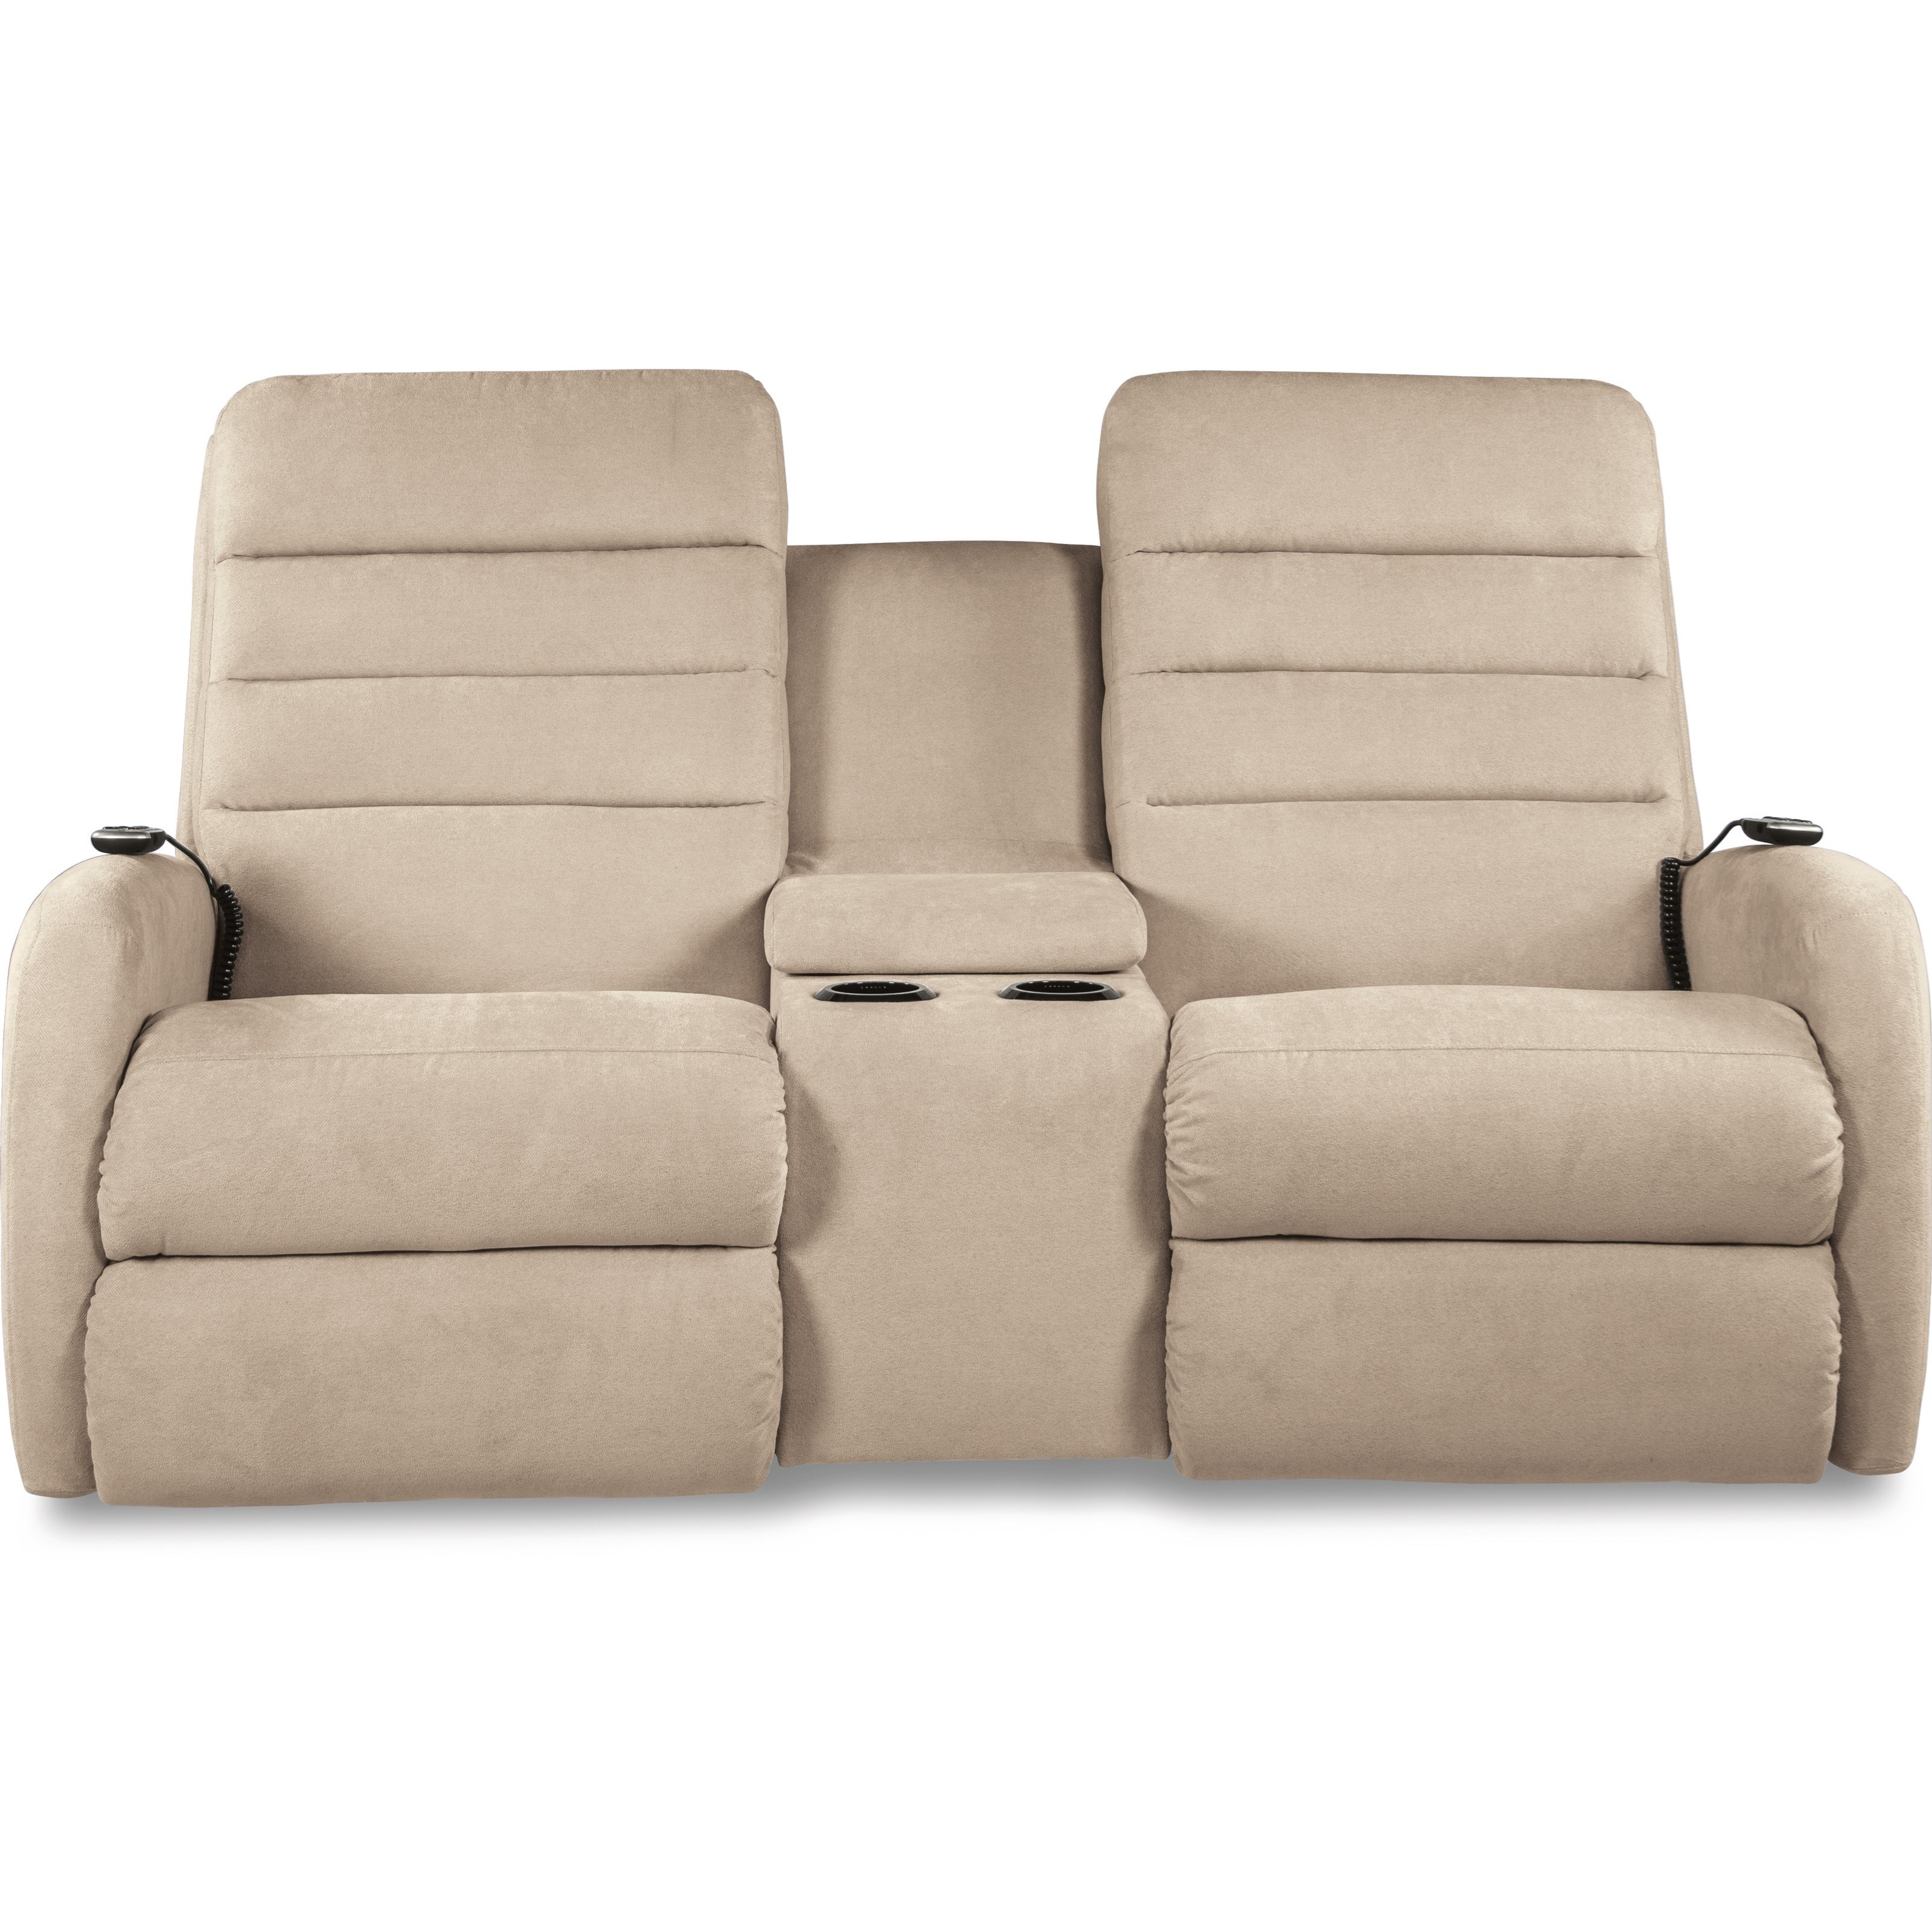 reclining height millerpower item trim threshold loveseat miller flexsteel with products power latitudes width